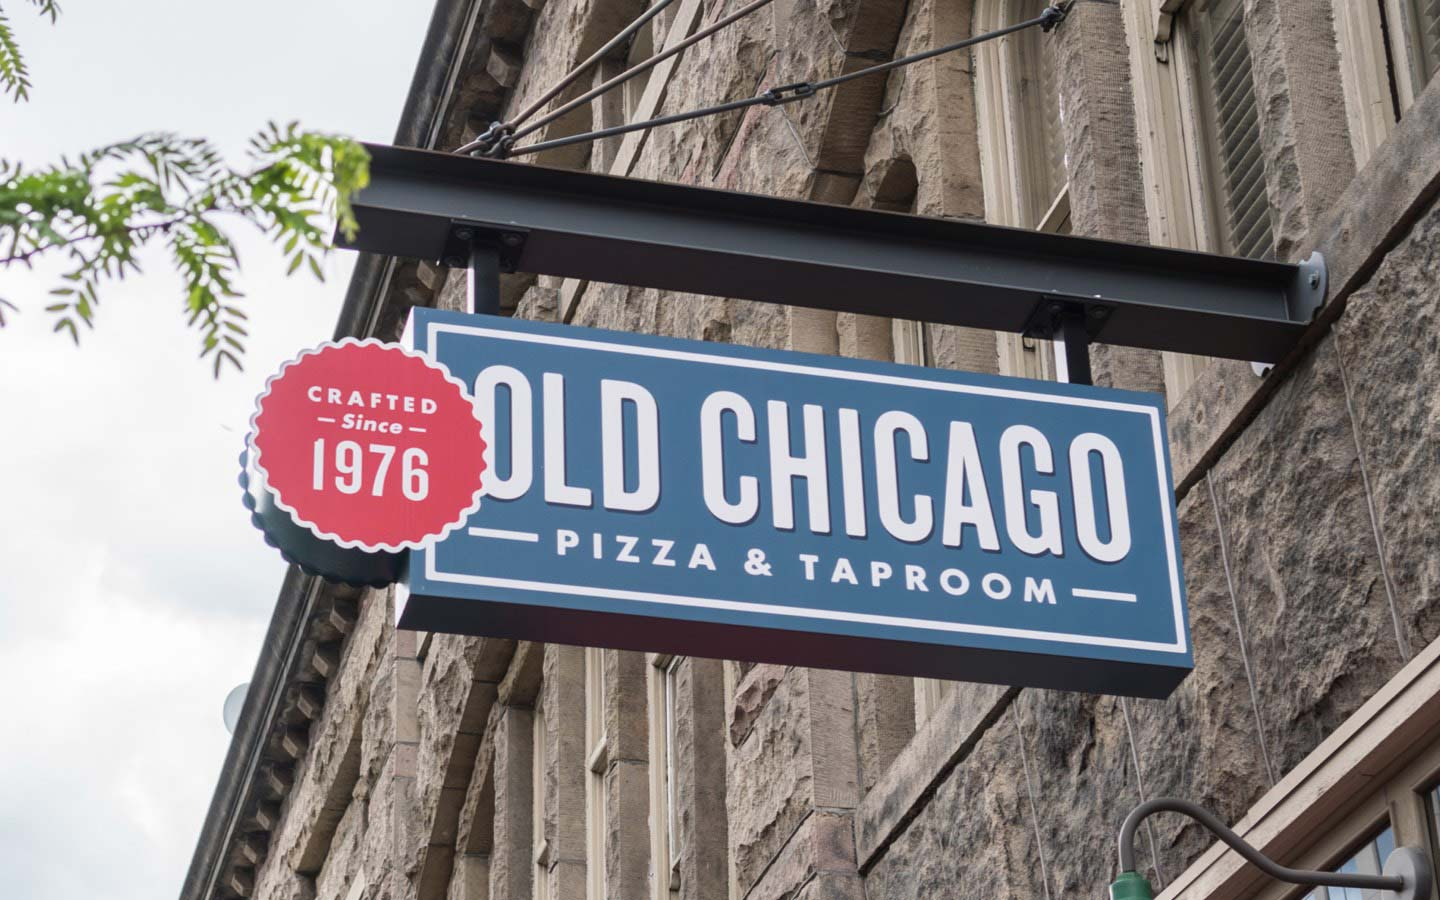 Old Chicago Exterior Signage